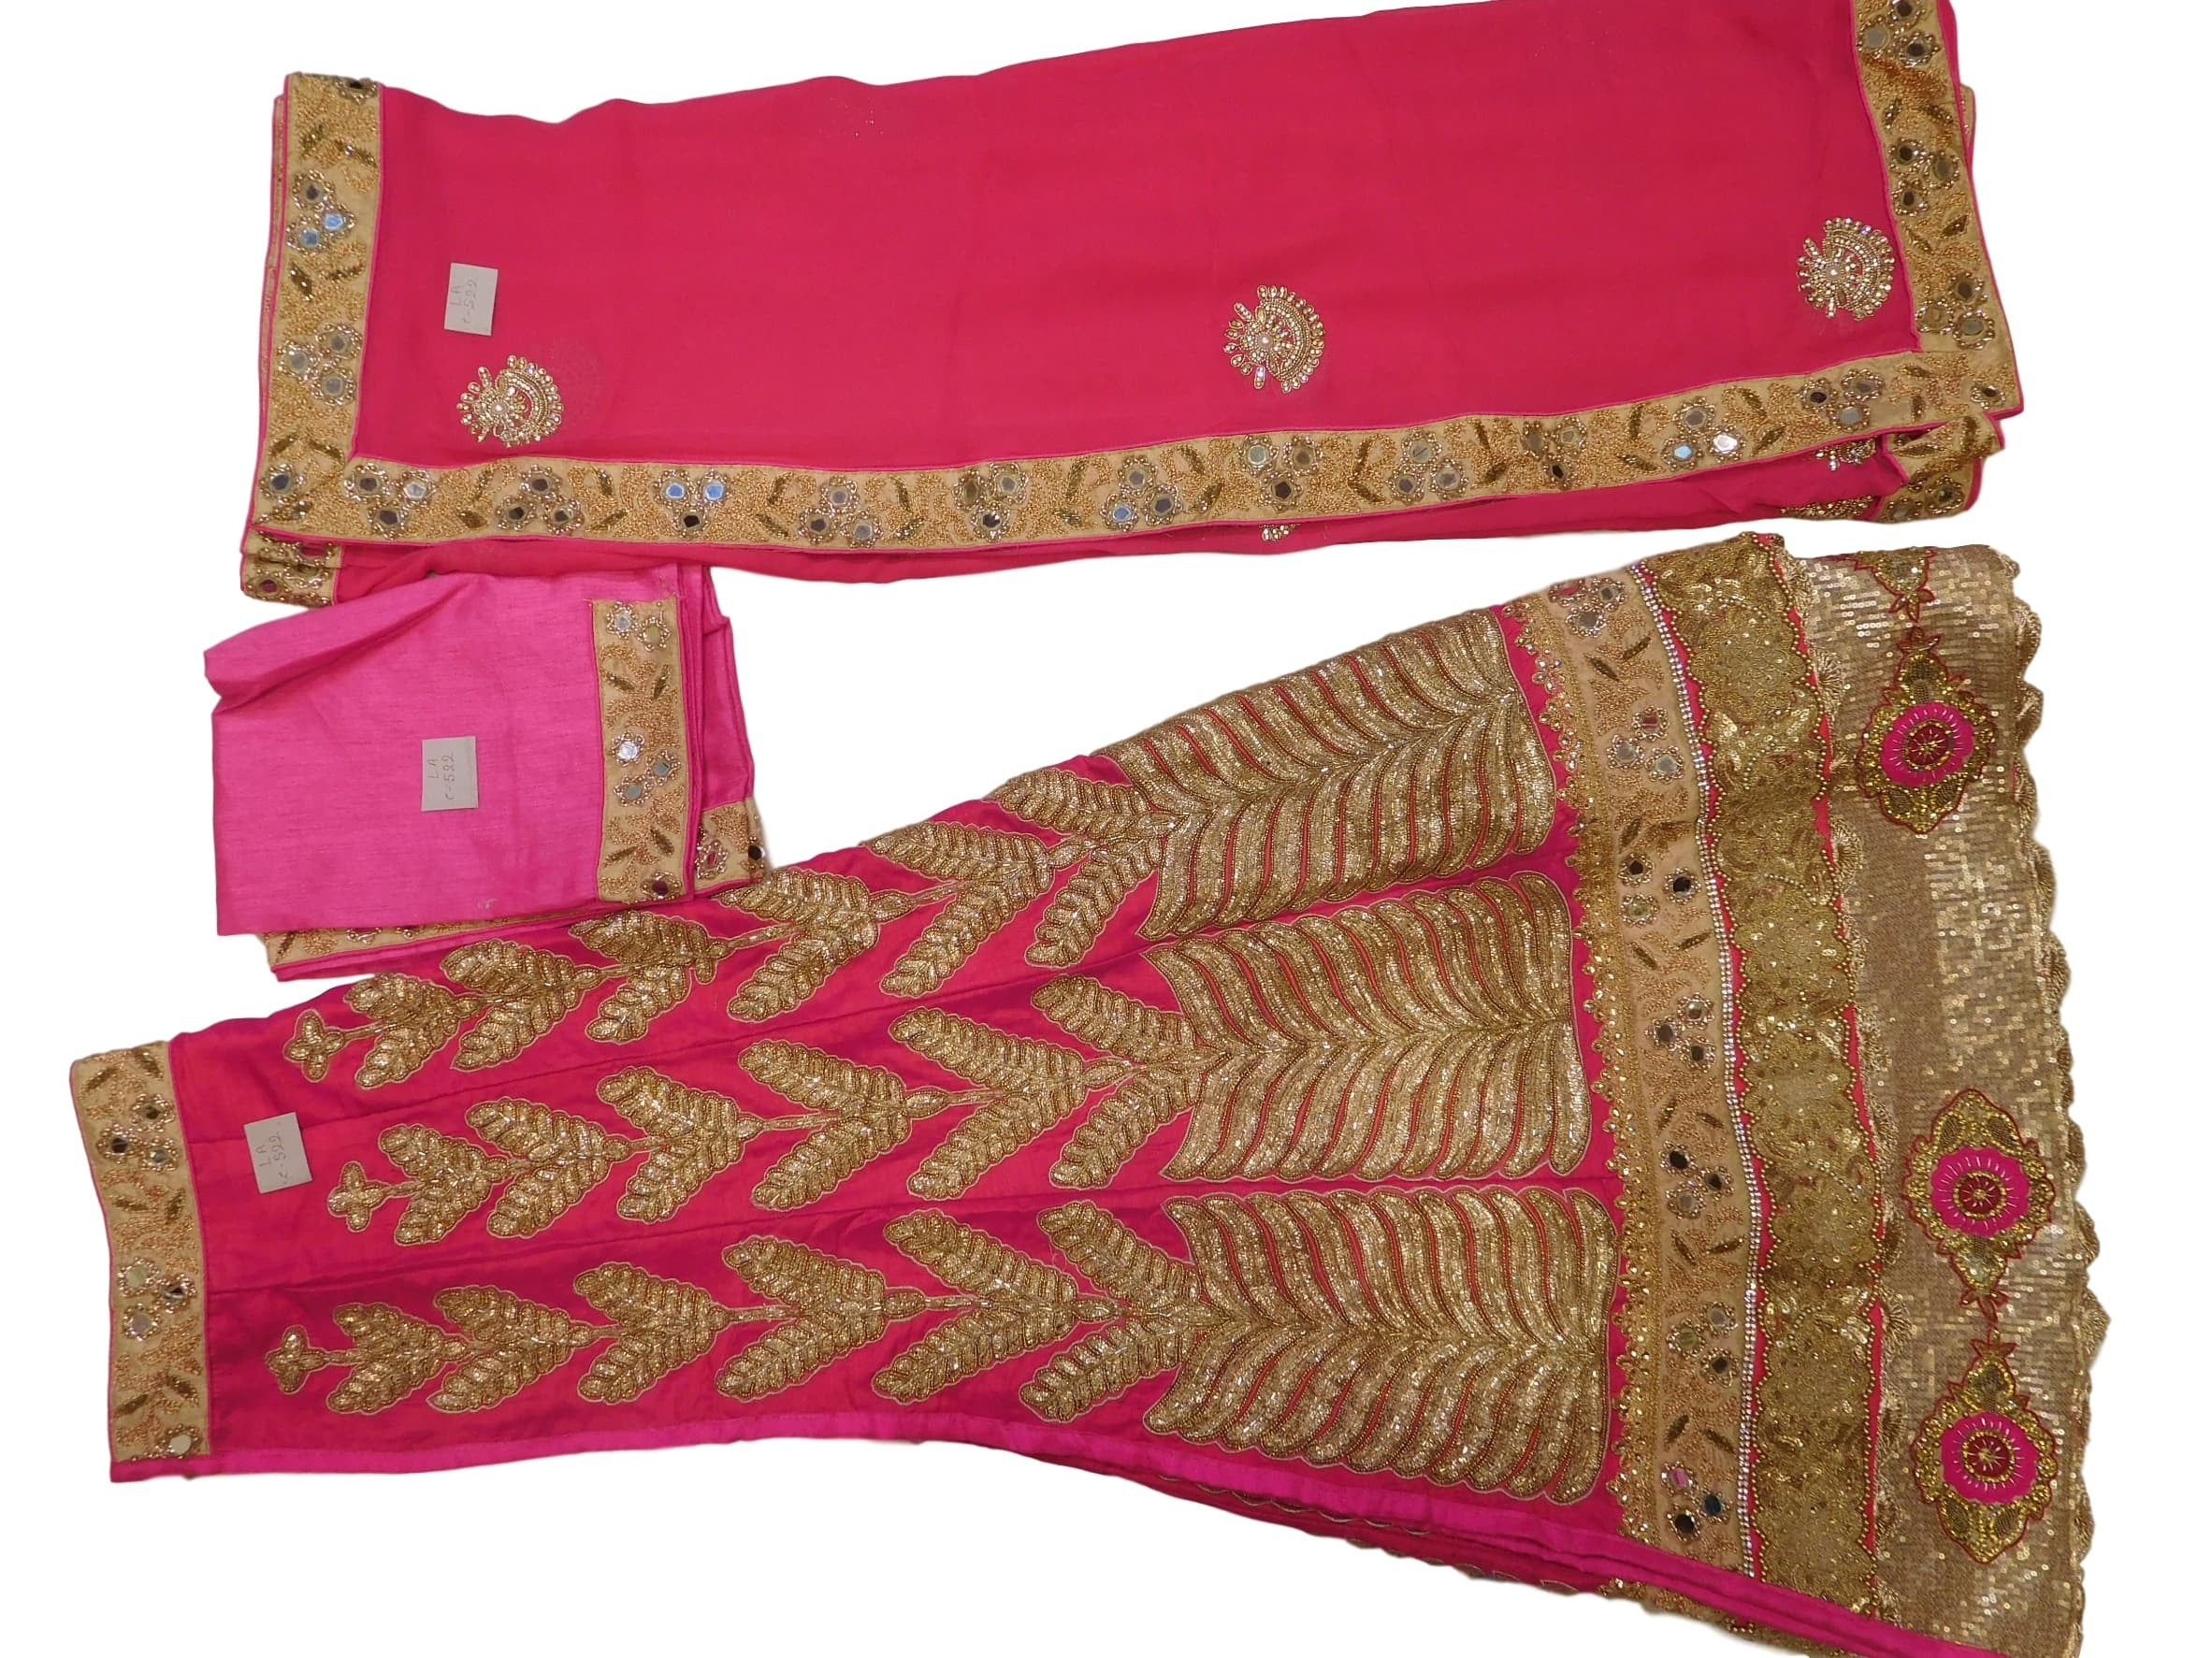 Pink Designer Raw Silk Bridal Hand Embroidery Work Lahenga With Georgette (Viscos) Dupatta & Siilk Blouse